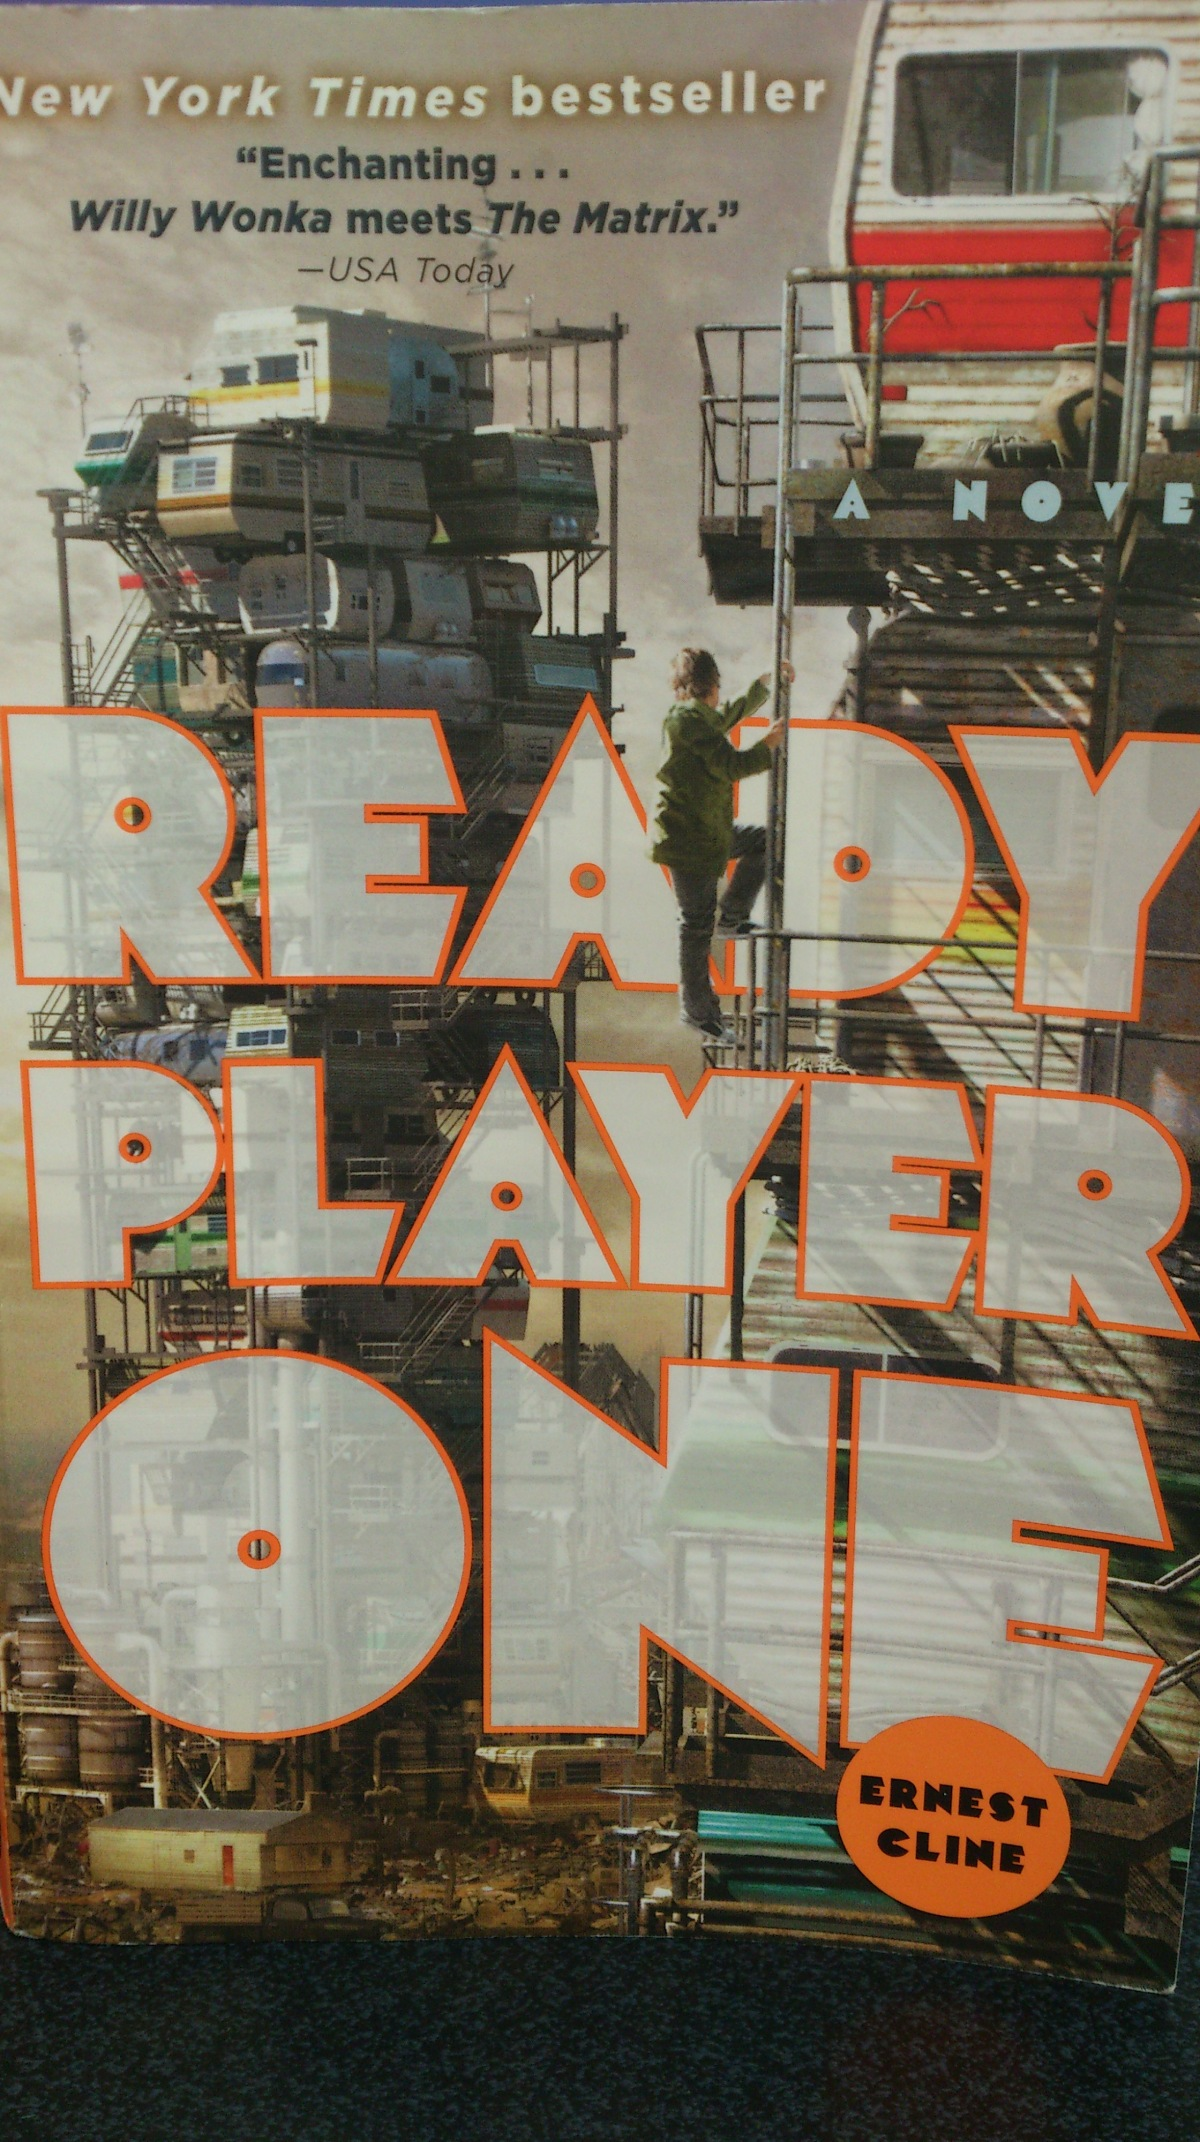 Literature Review – Ready Player One